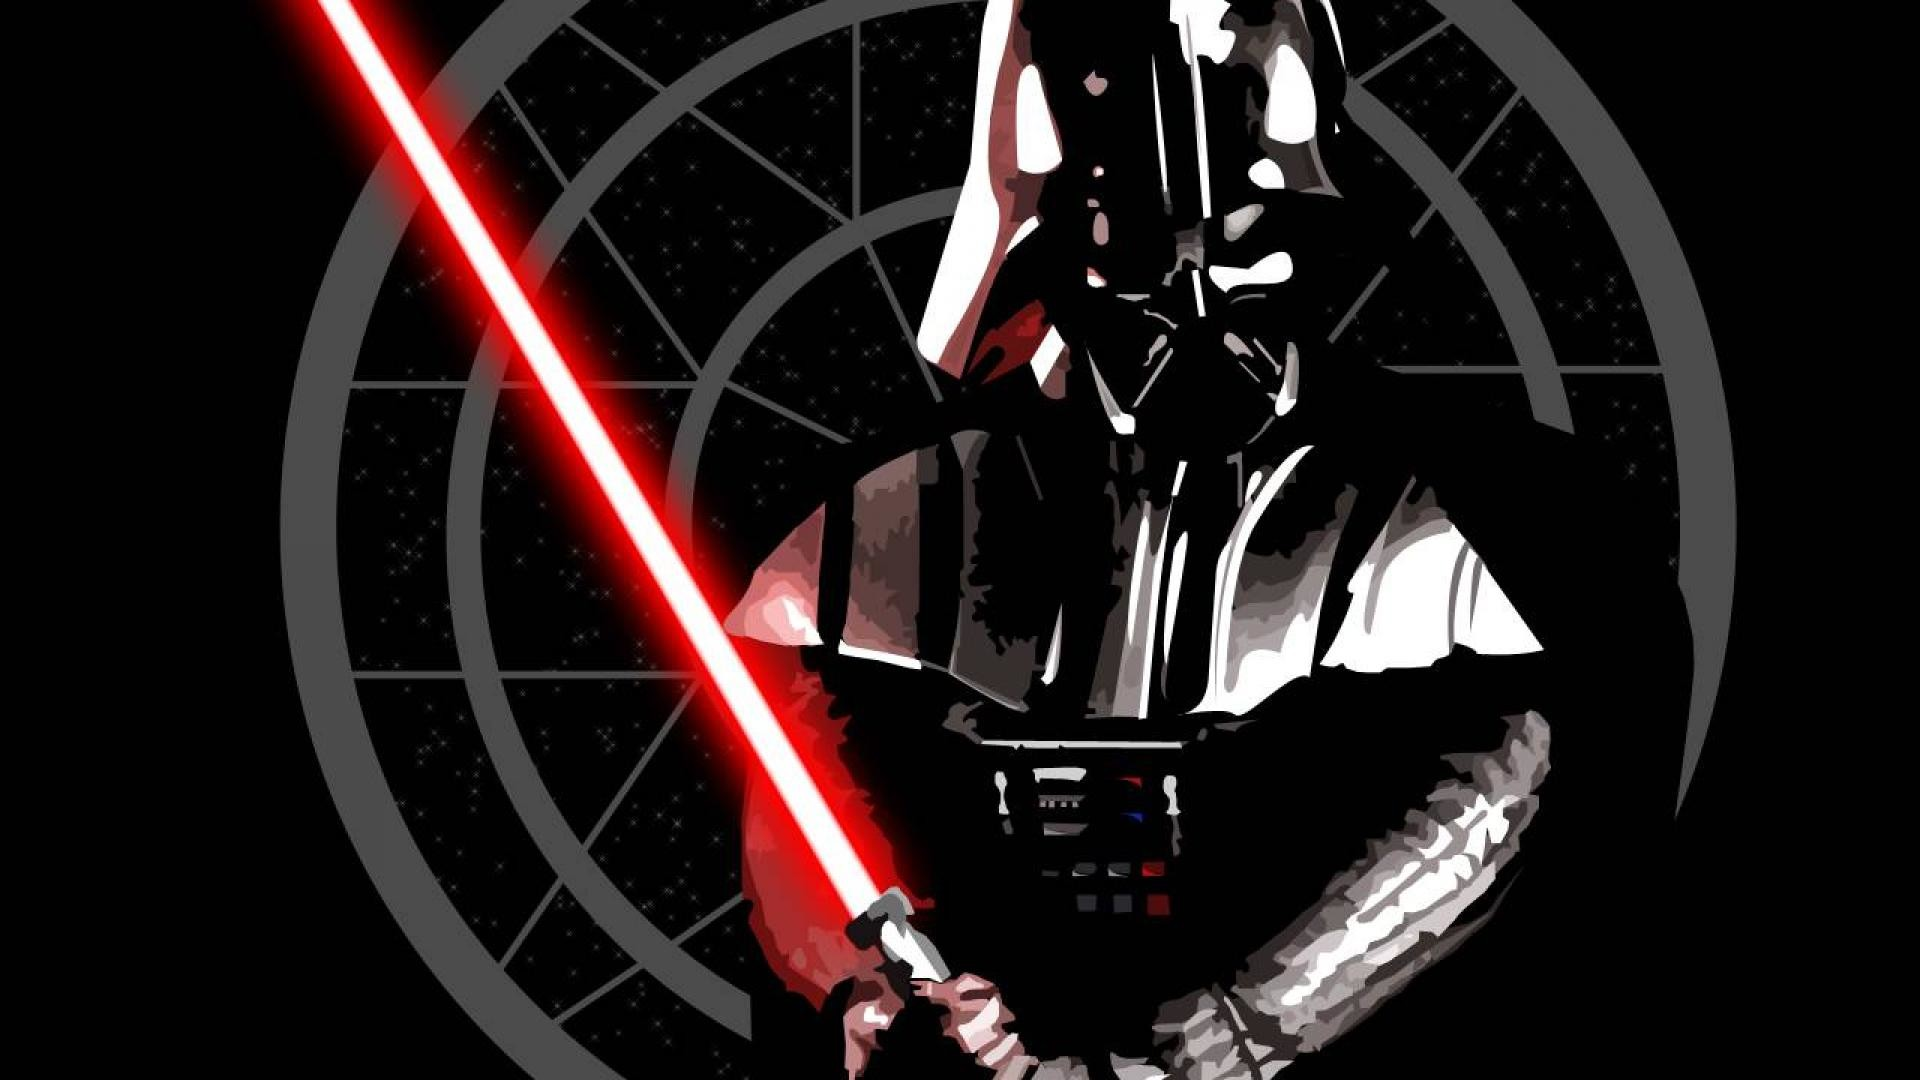 … darth vader hd wallpapers cly wallpapers hd …